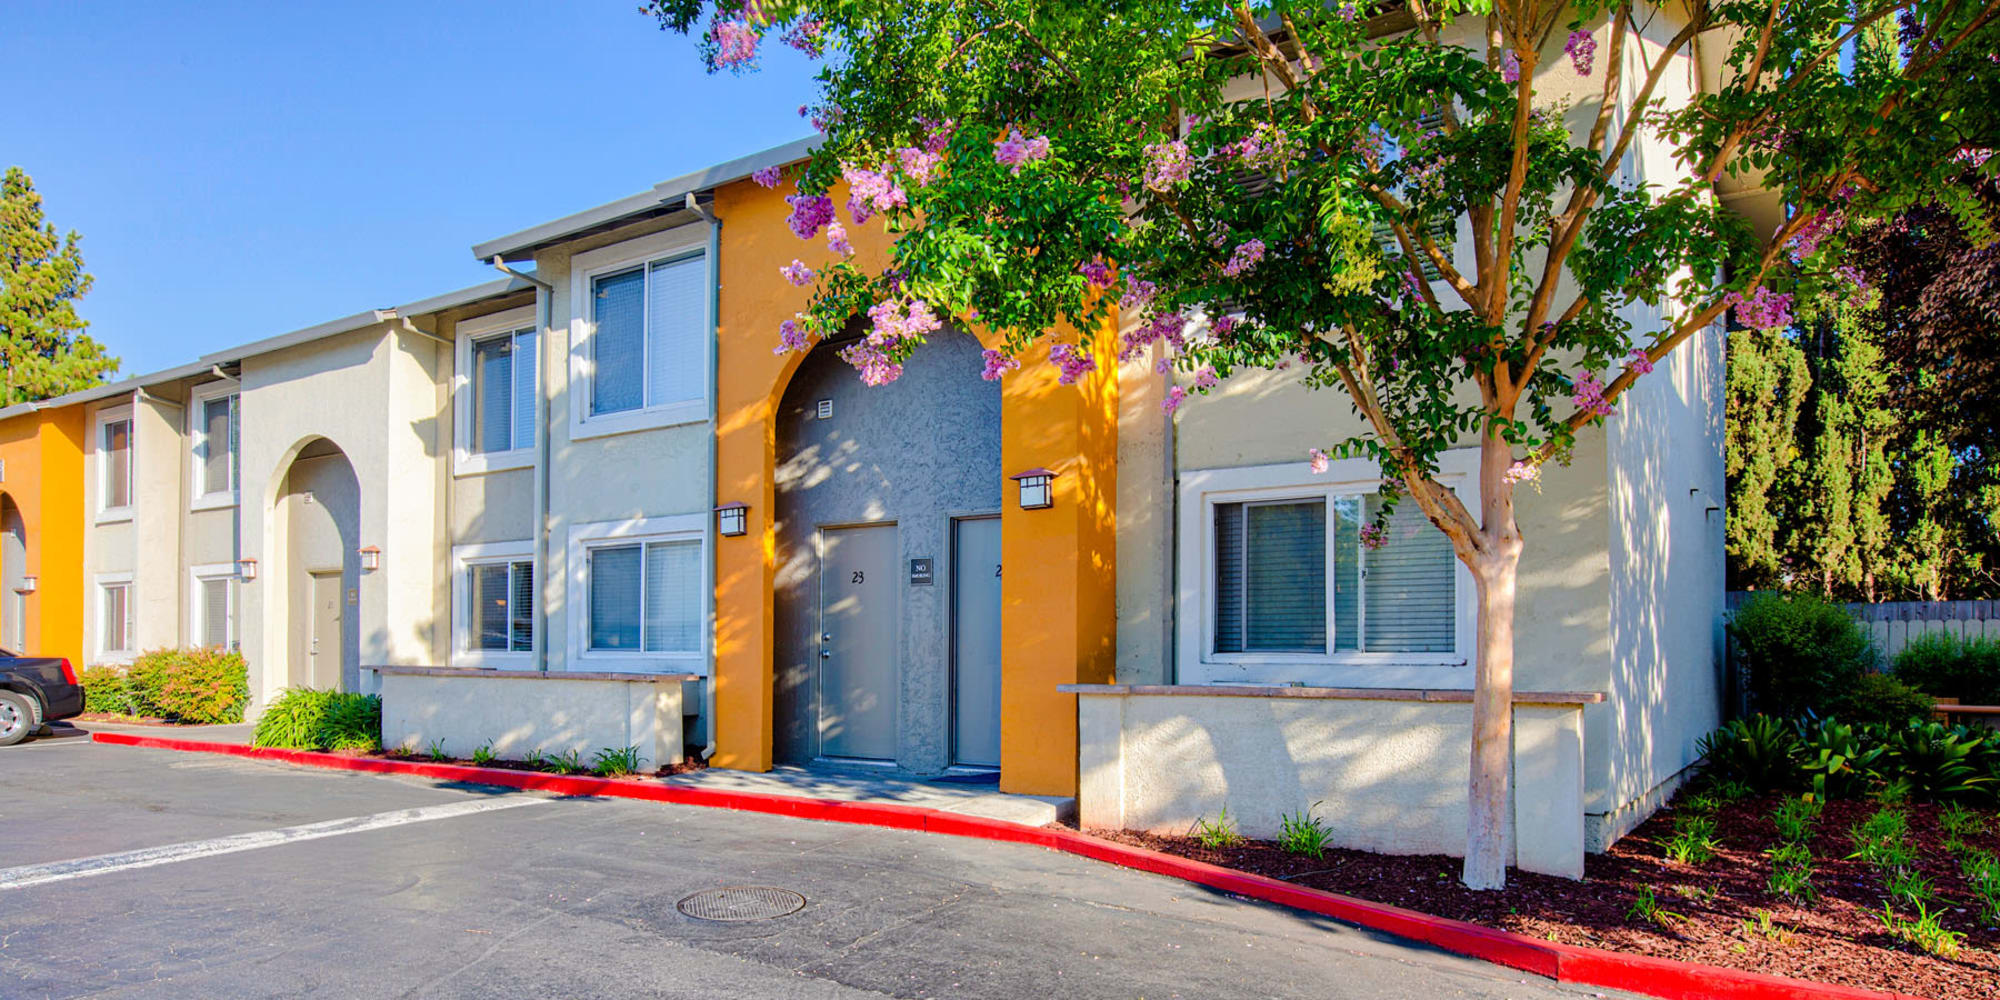 Colorful resident buildings and mature trees at Pleasanton Place Apartment Homes in Pleasanton, California